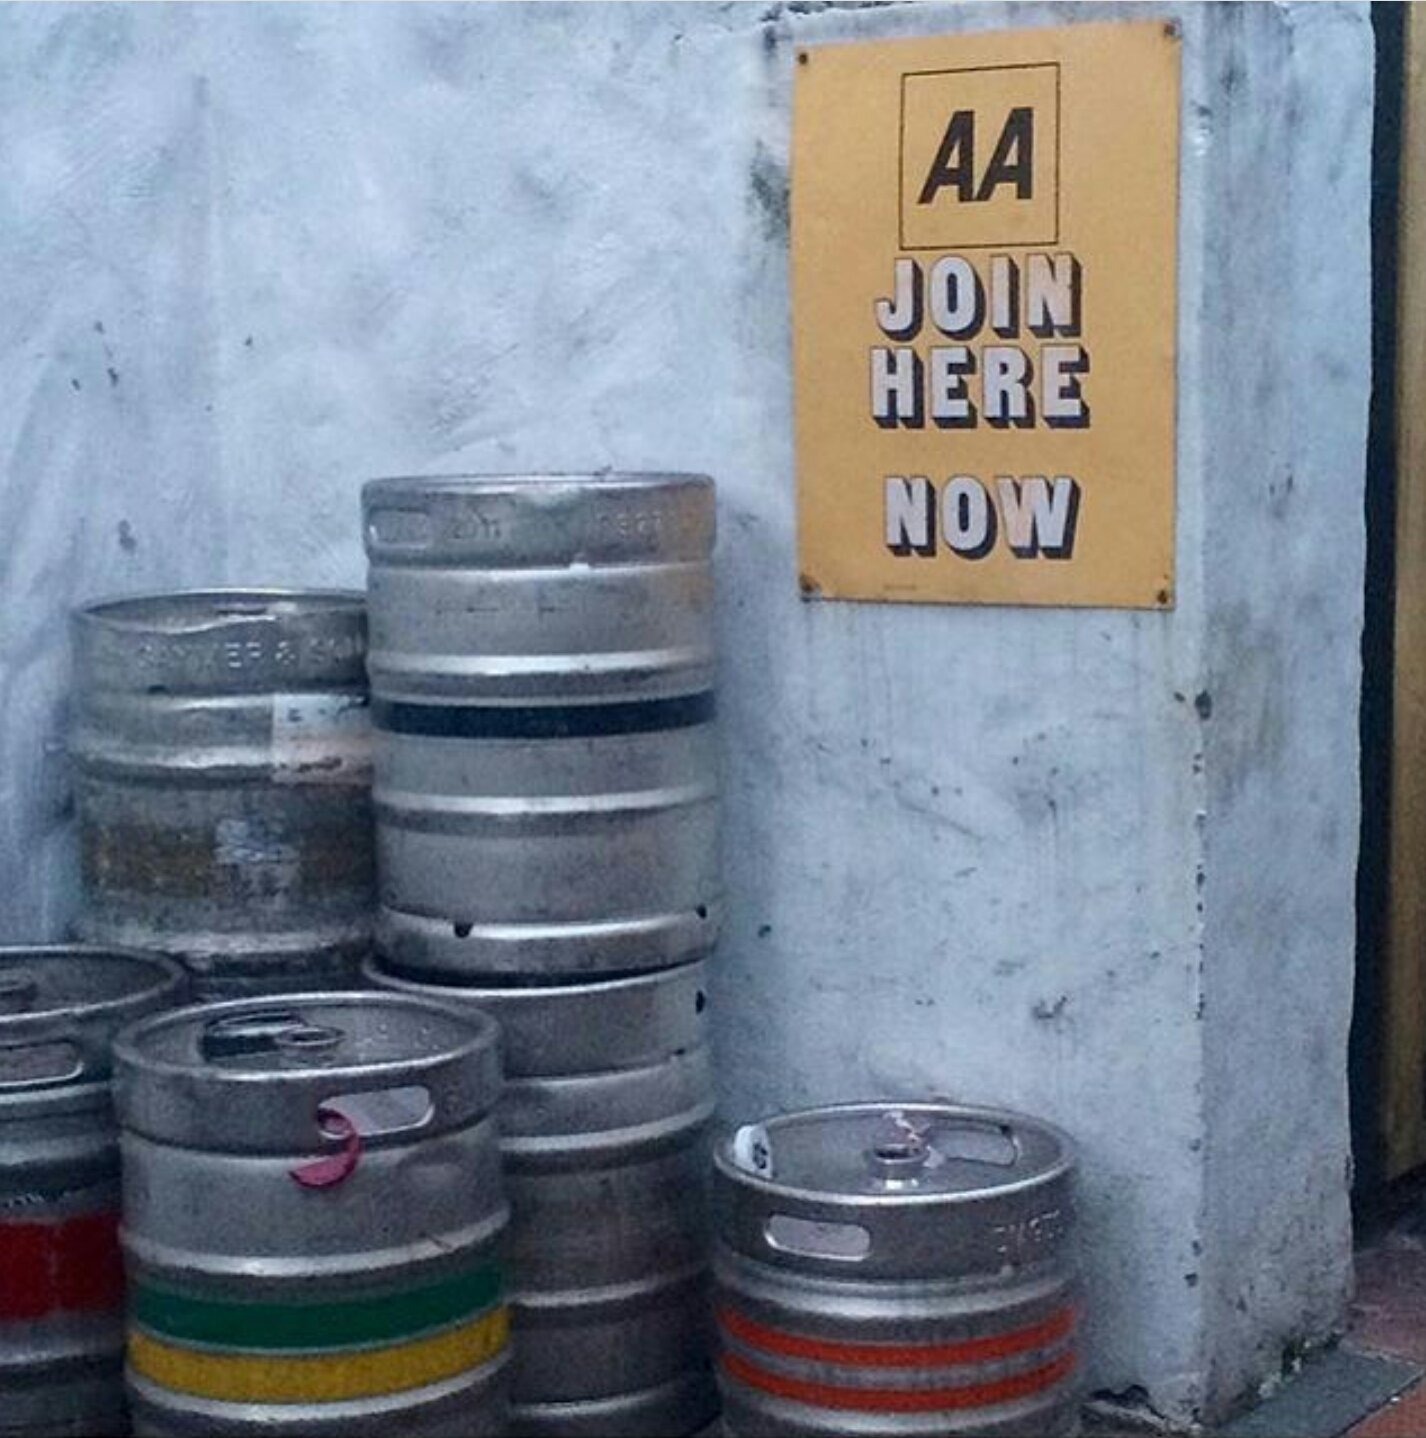 Meanwhile in Ireland AA memberships are up 🍷